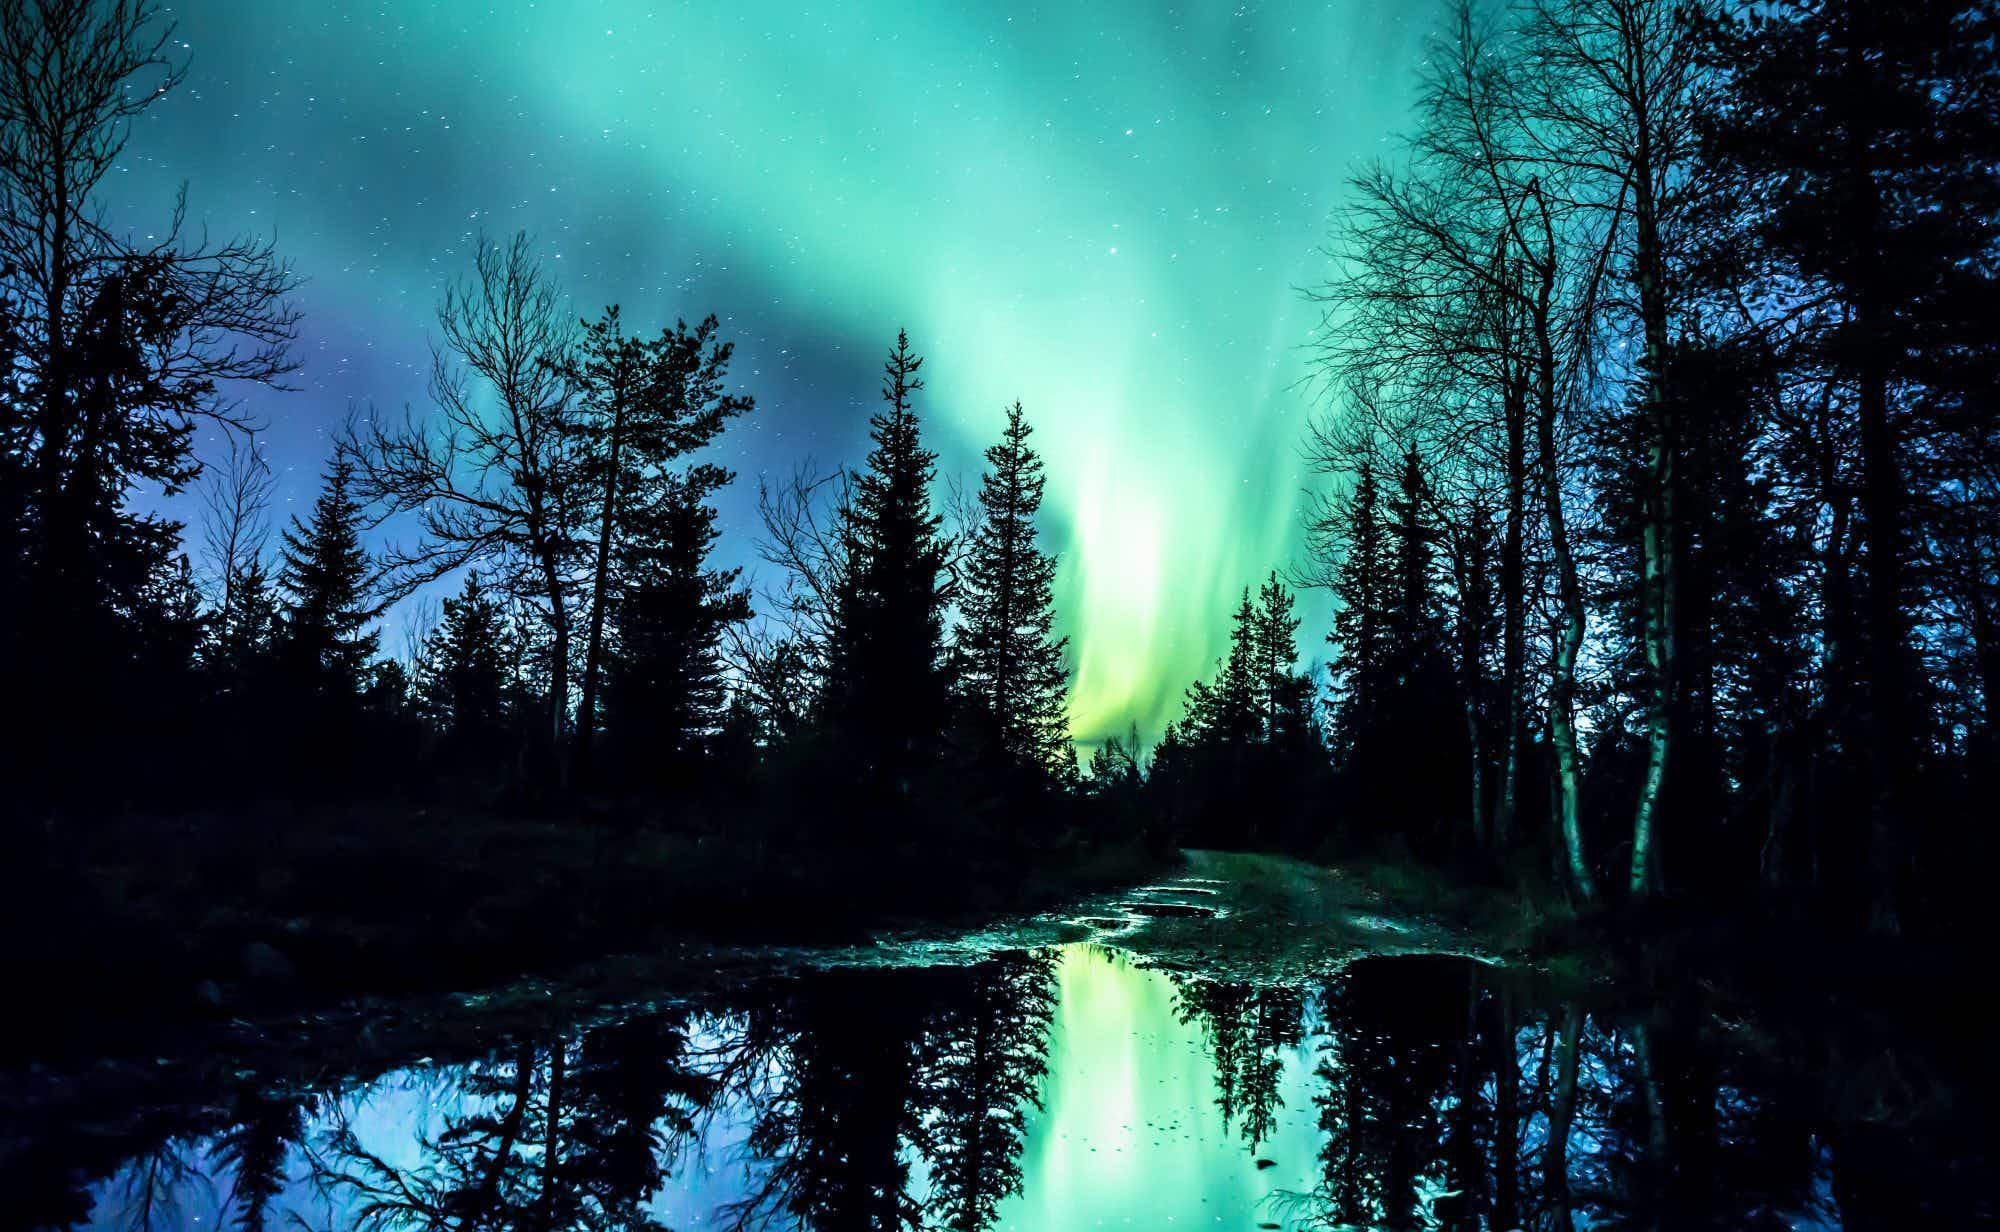 These incredible images will inspire you to chase the Northern Lights